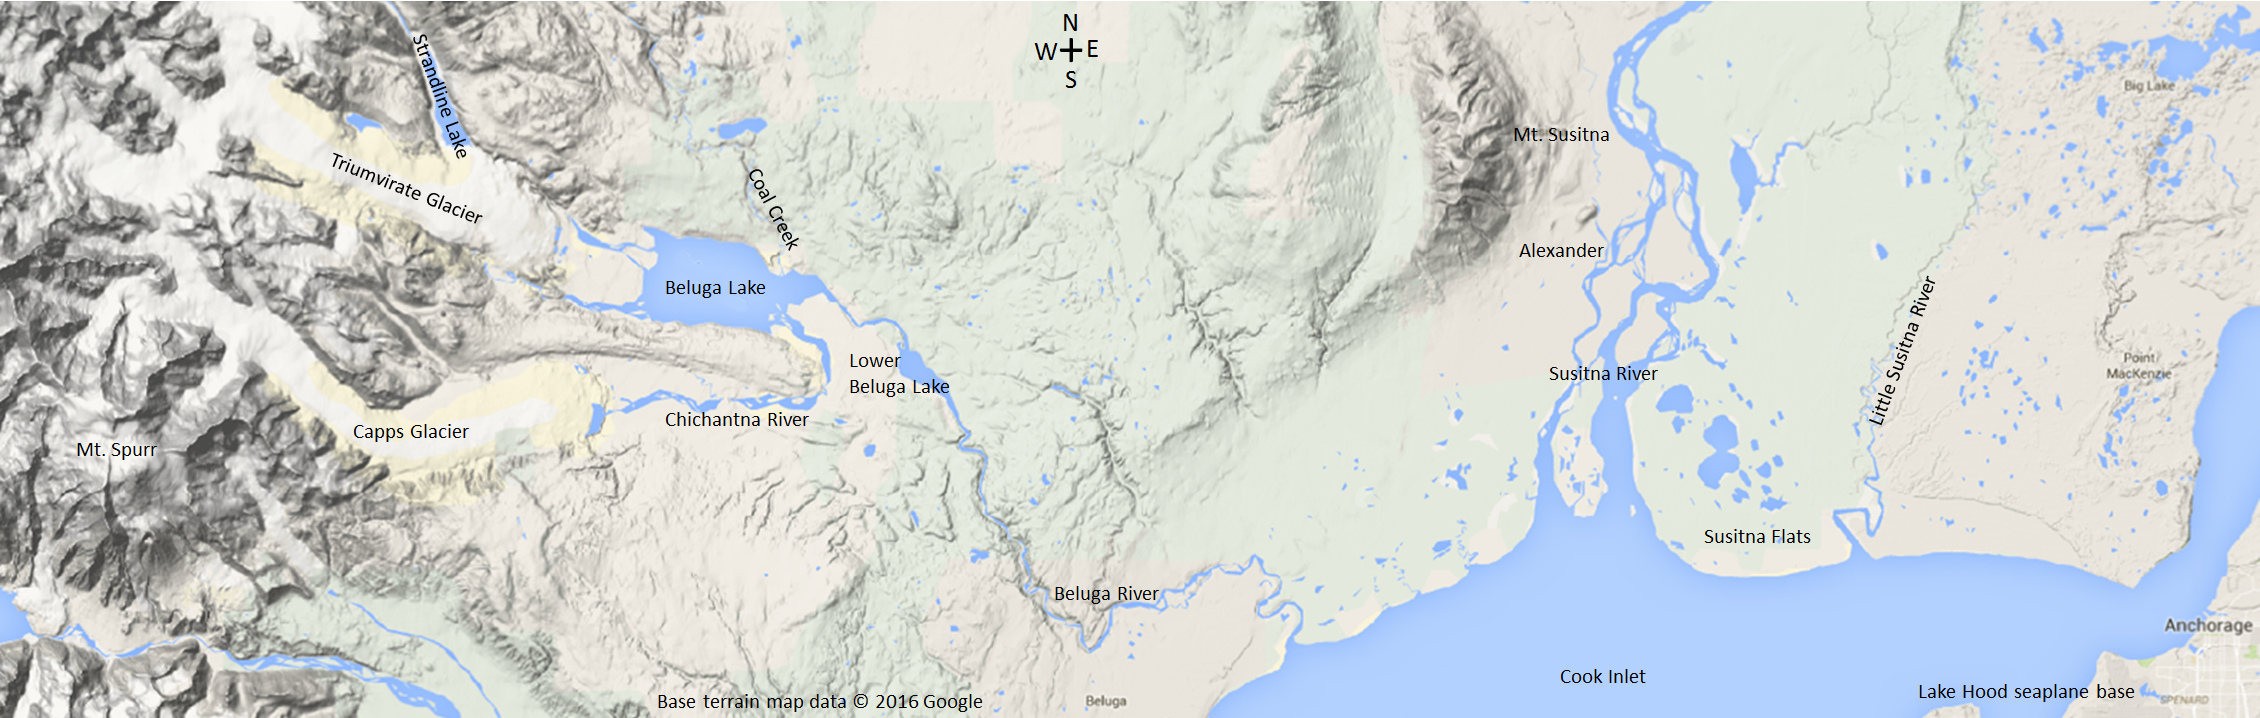 the area of our trip from anchorage to beluga lake base terrain map data